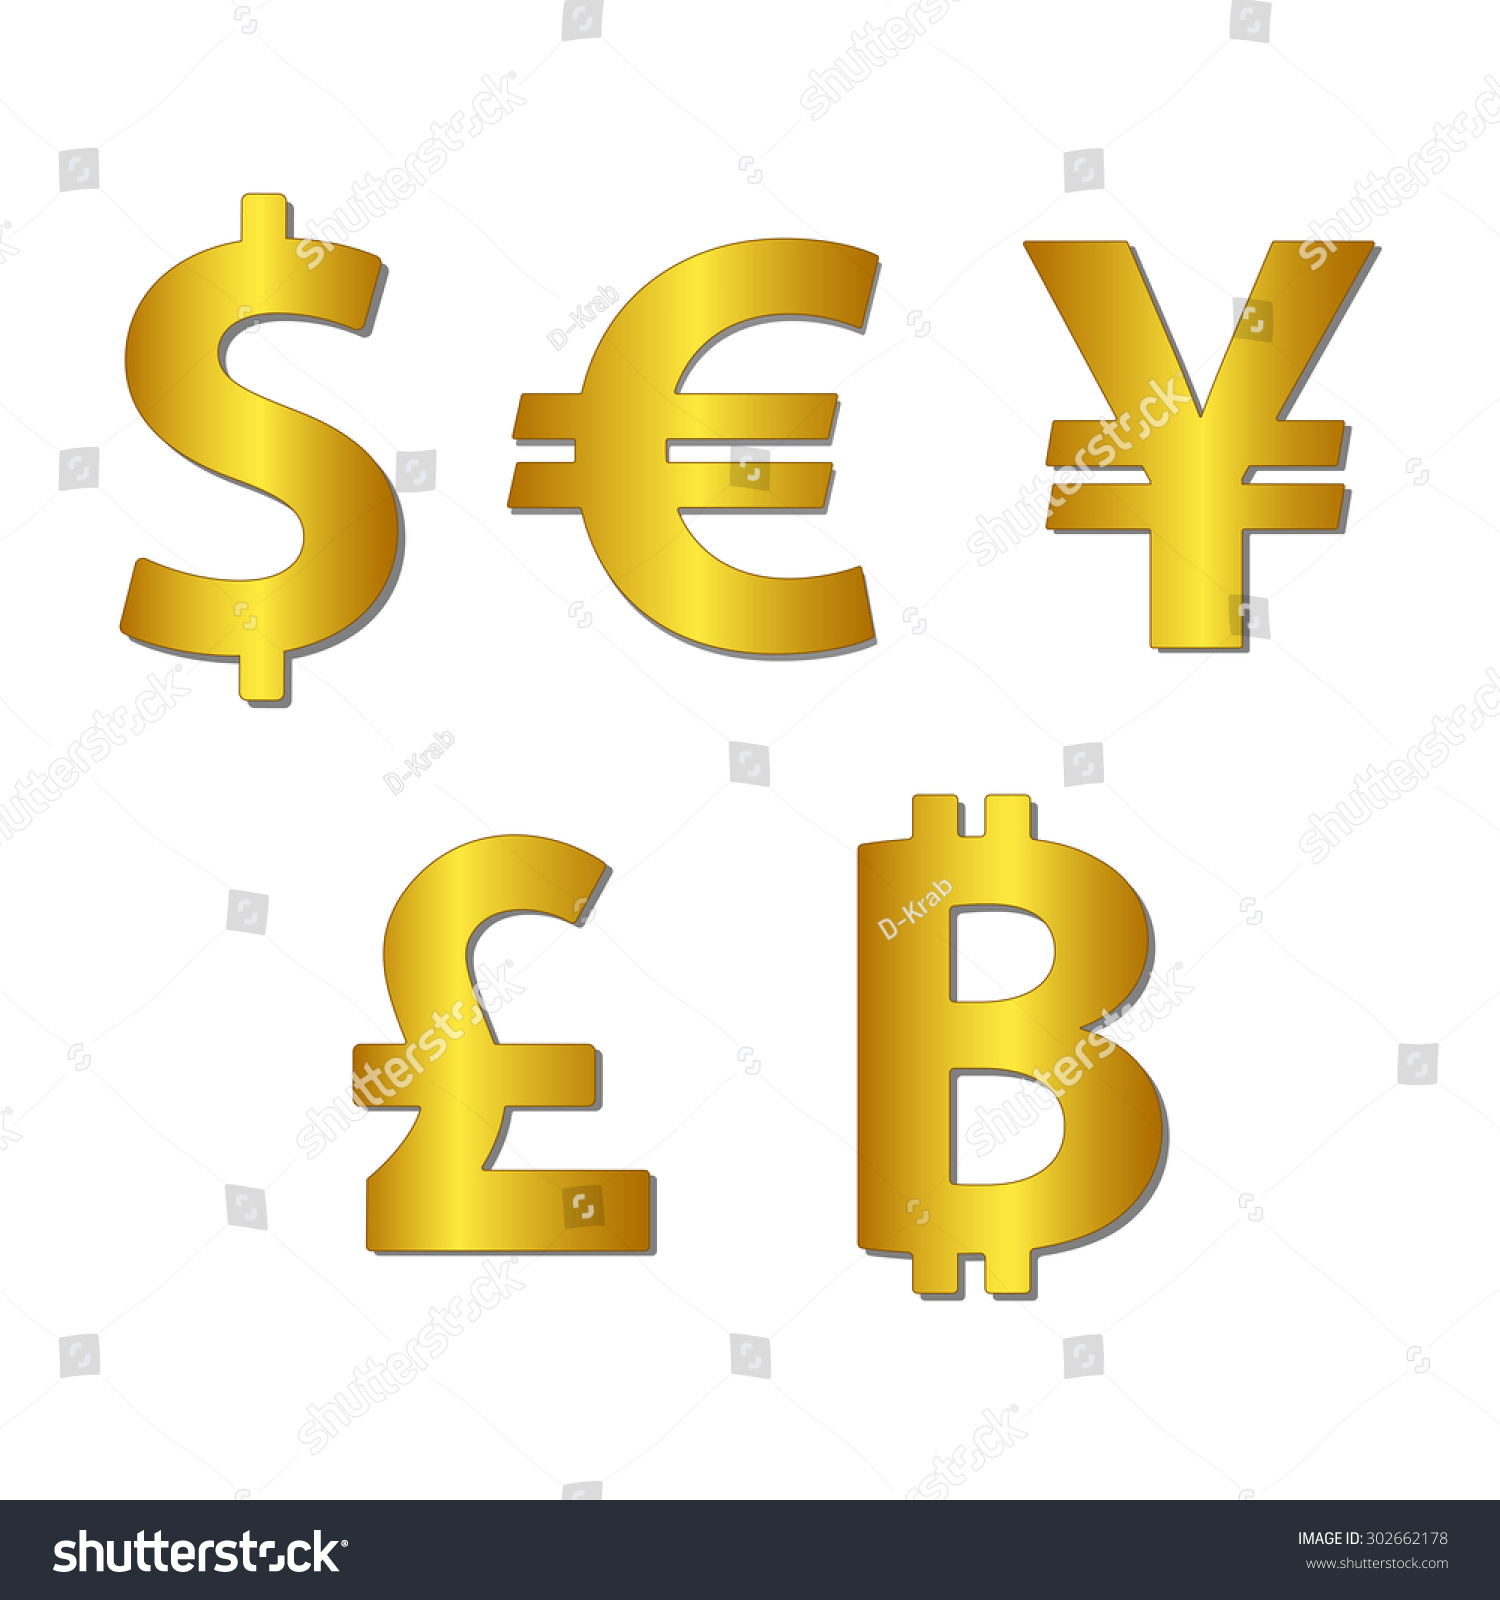 Monetary Symbols For Currency Topsimages